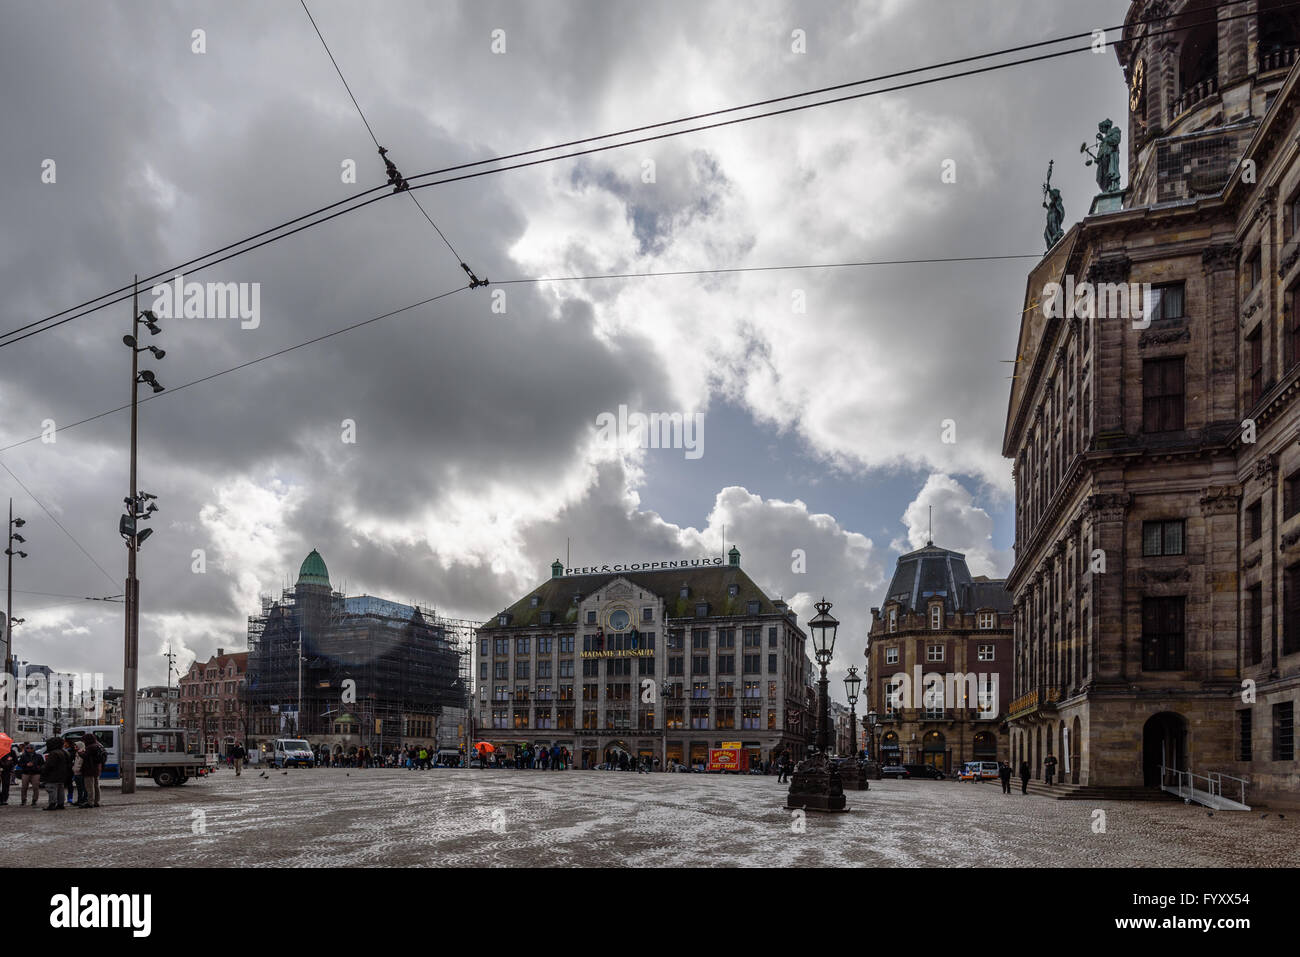 Madame Tussaud Amsterdam A popular tourist attraction, Madame Tussaud is located at the Dam square - Stock Image